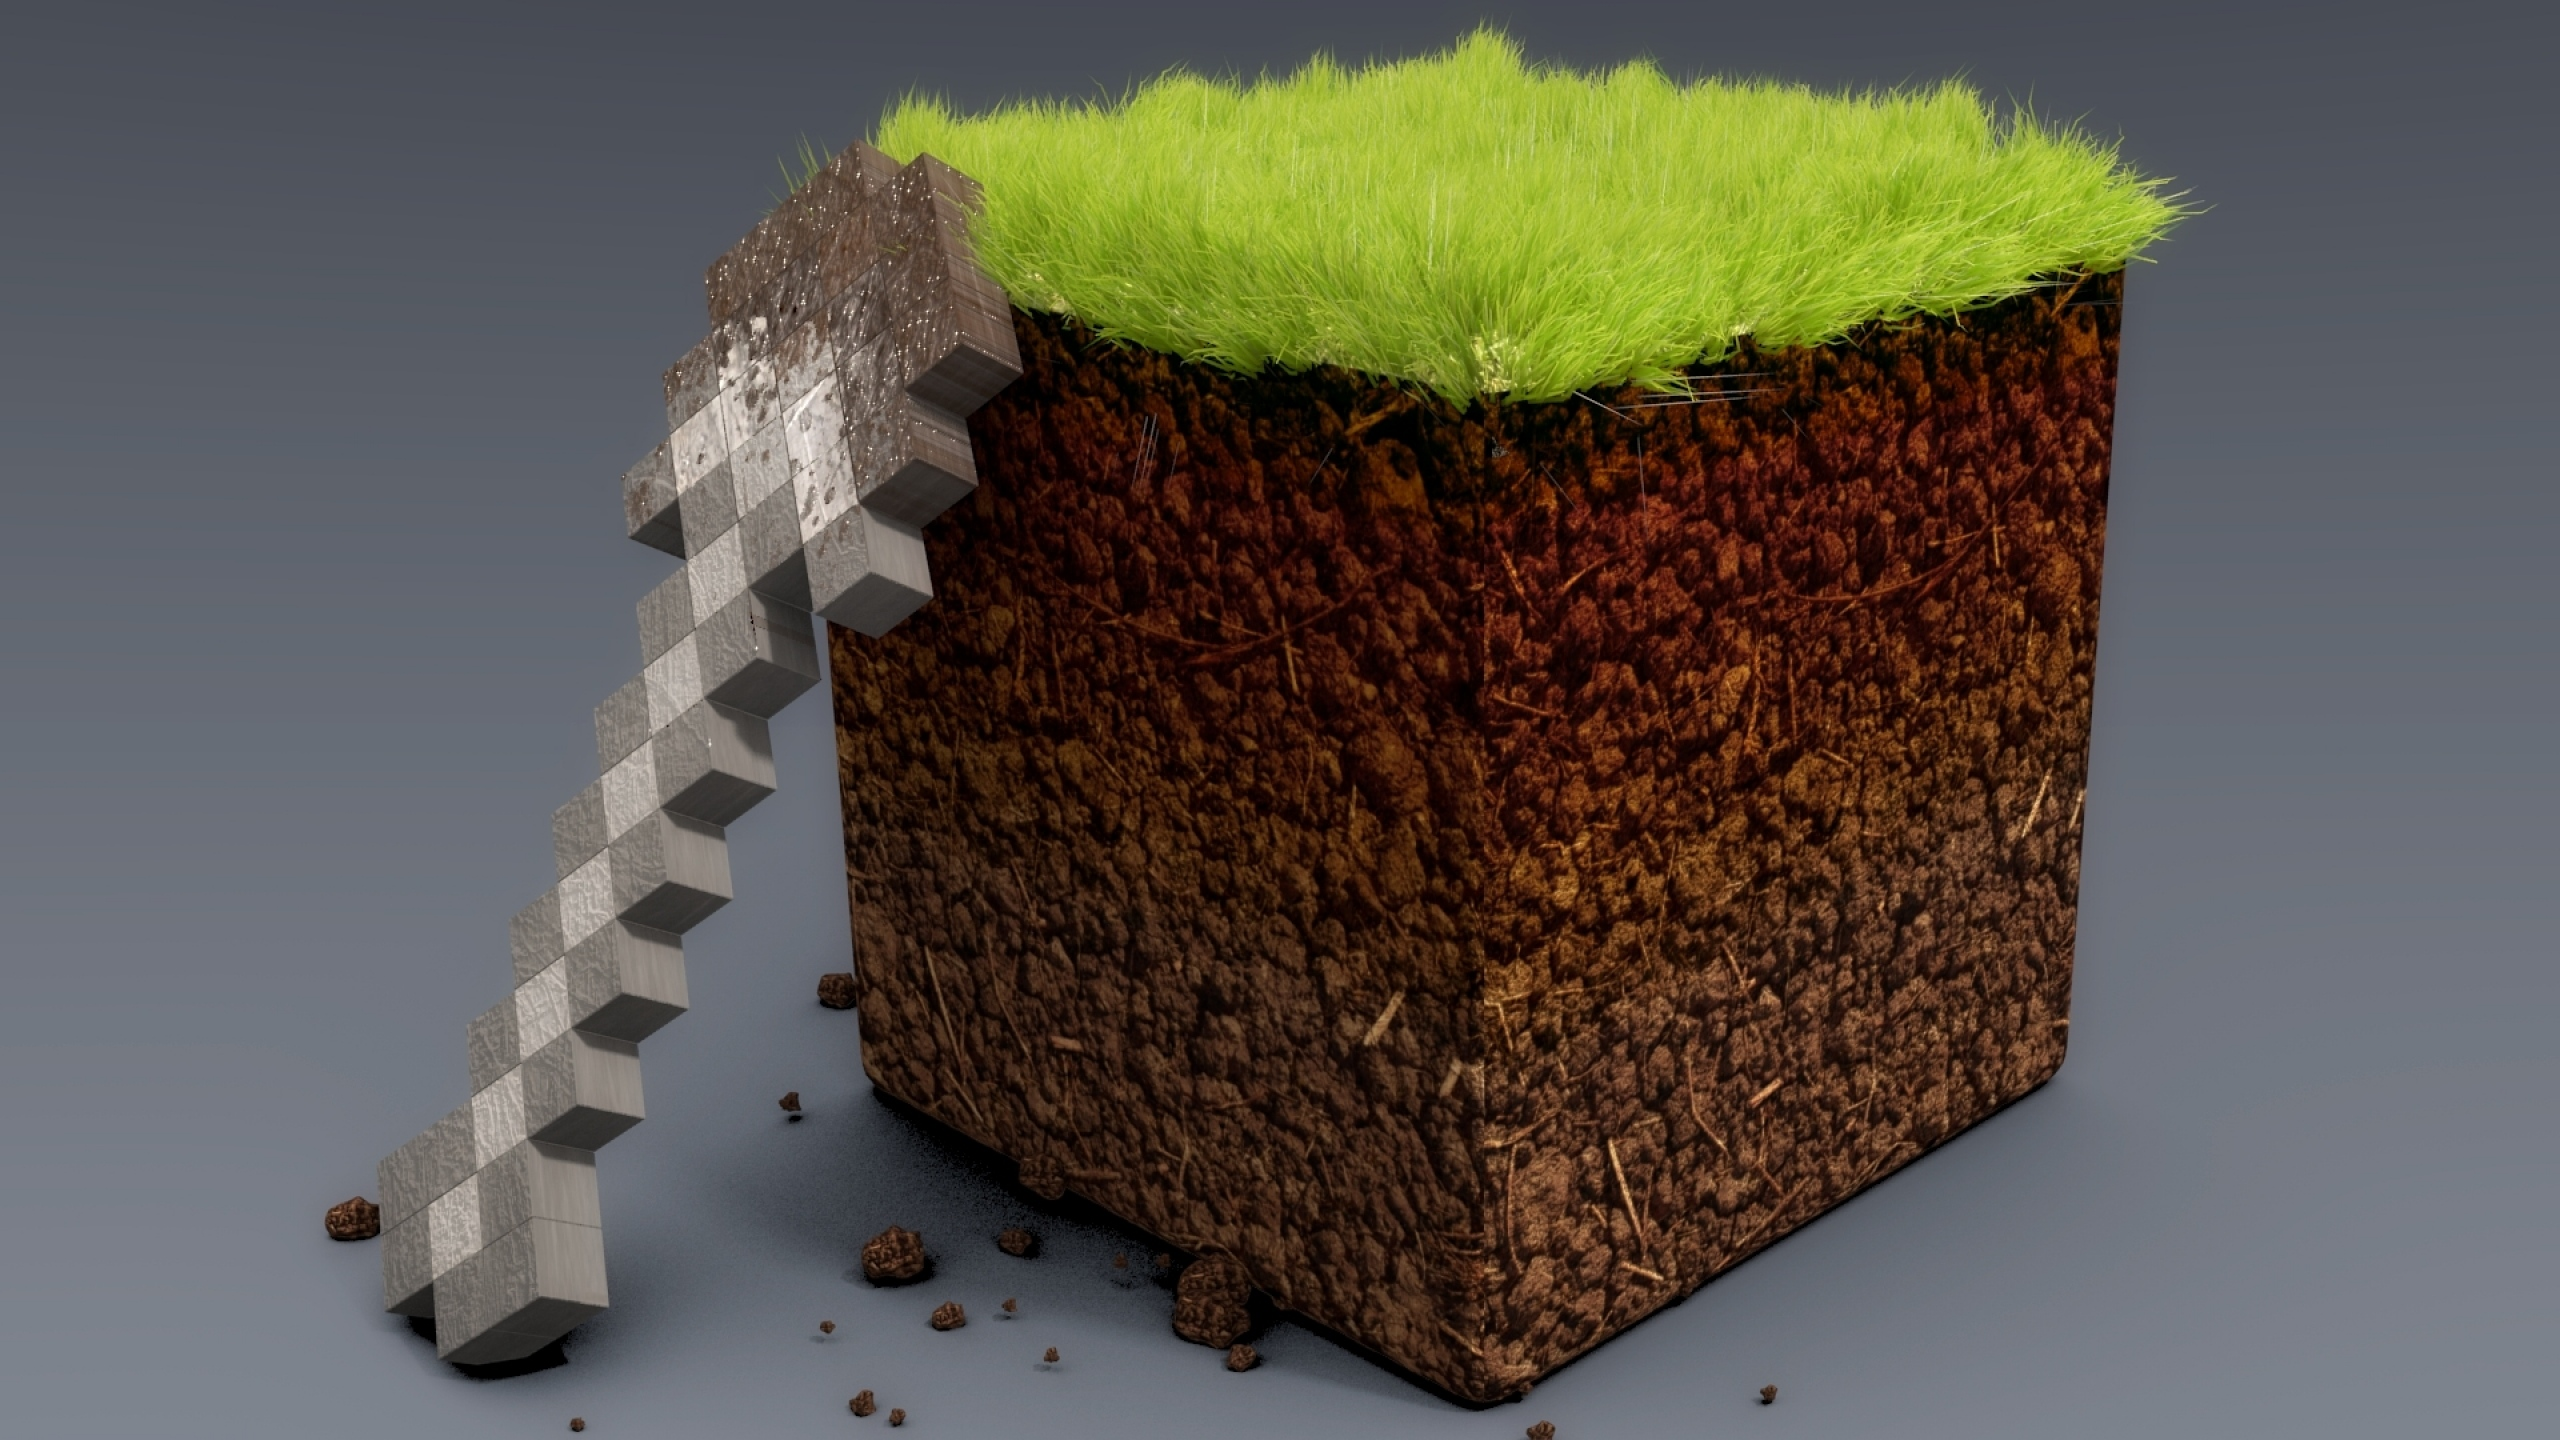 Mac-iMac-Minecraft-HD-Desktop-Backgrounds-x-wallpaper-wp3608179